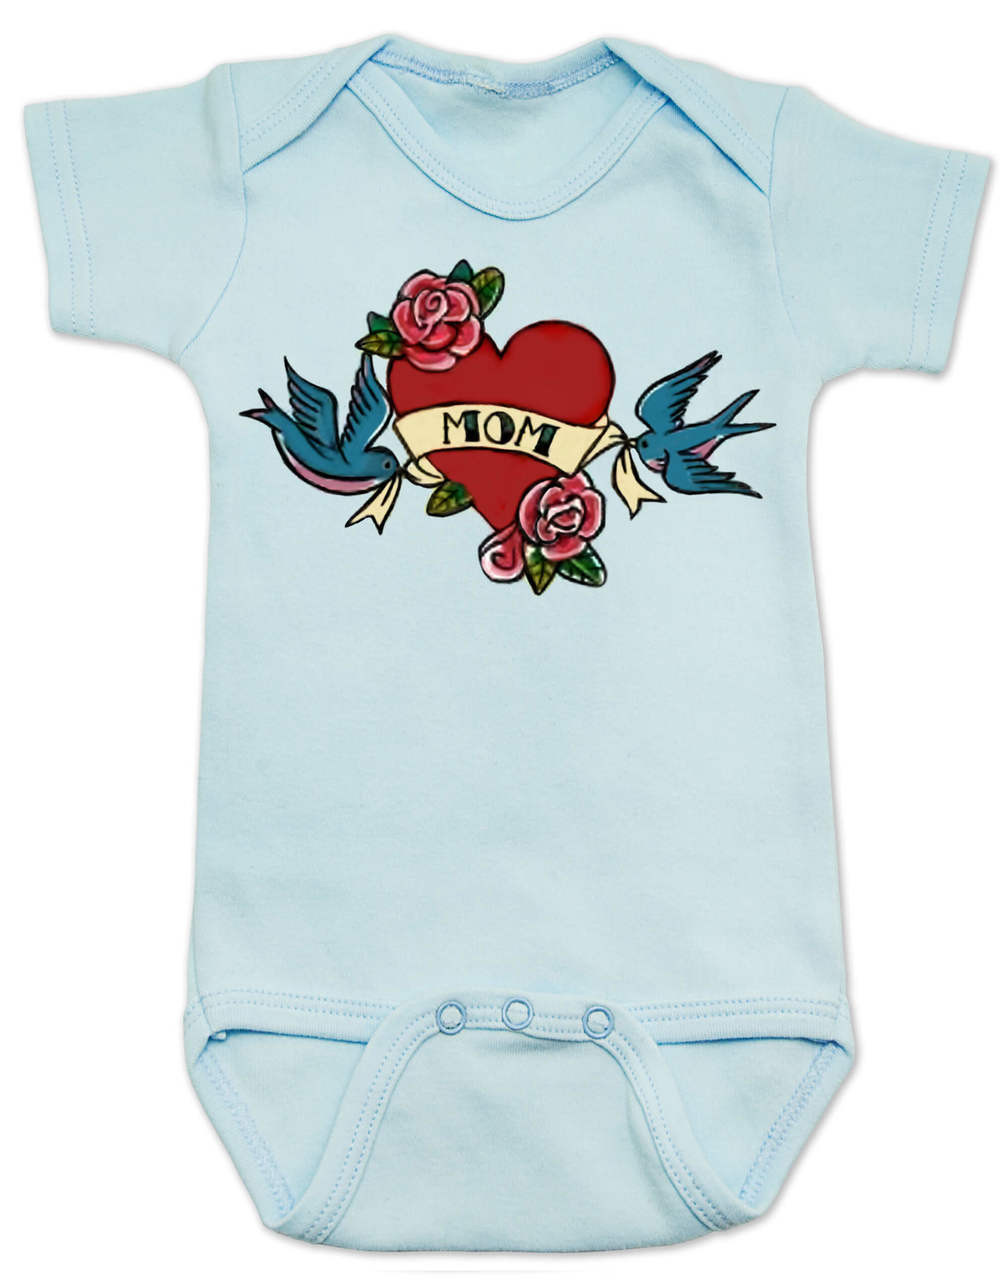 My Mom/'s Tattoos Are Better Onesie Baby Clothing Shower Gift Geek Funny Cute